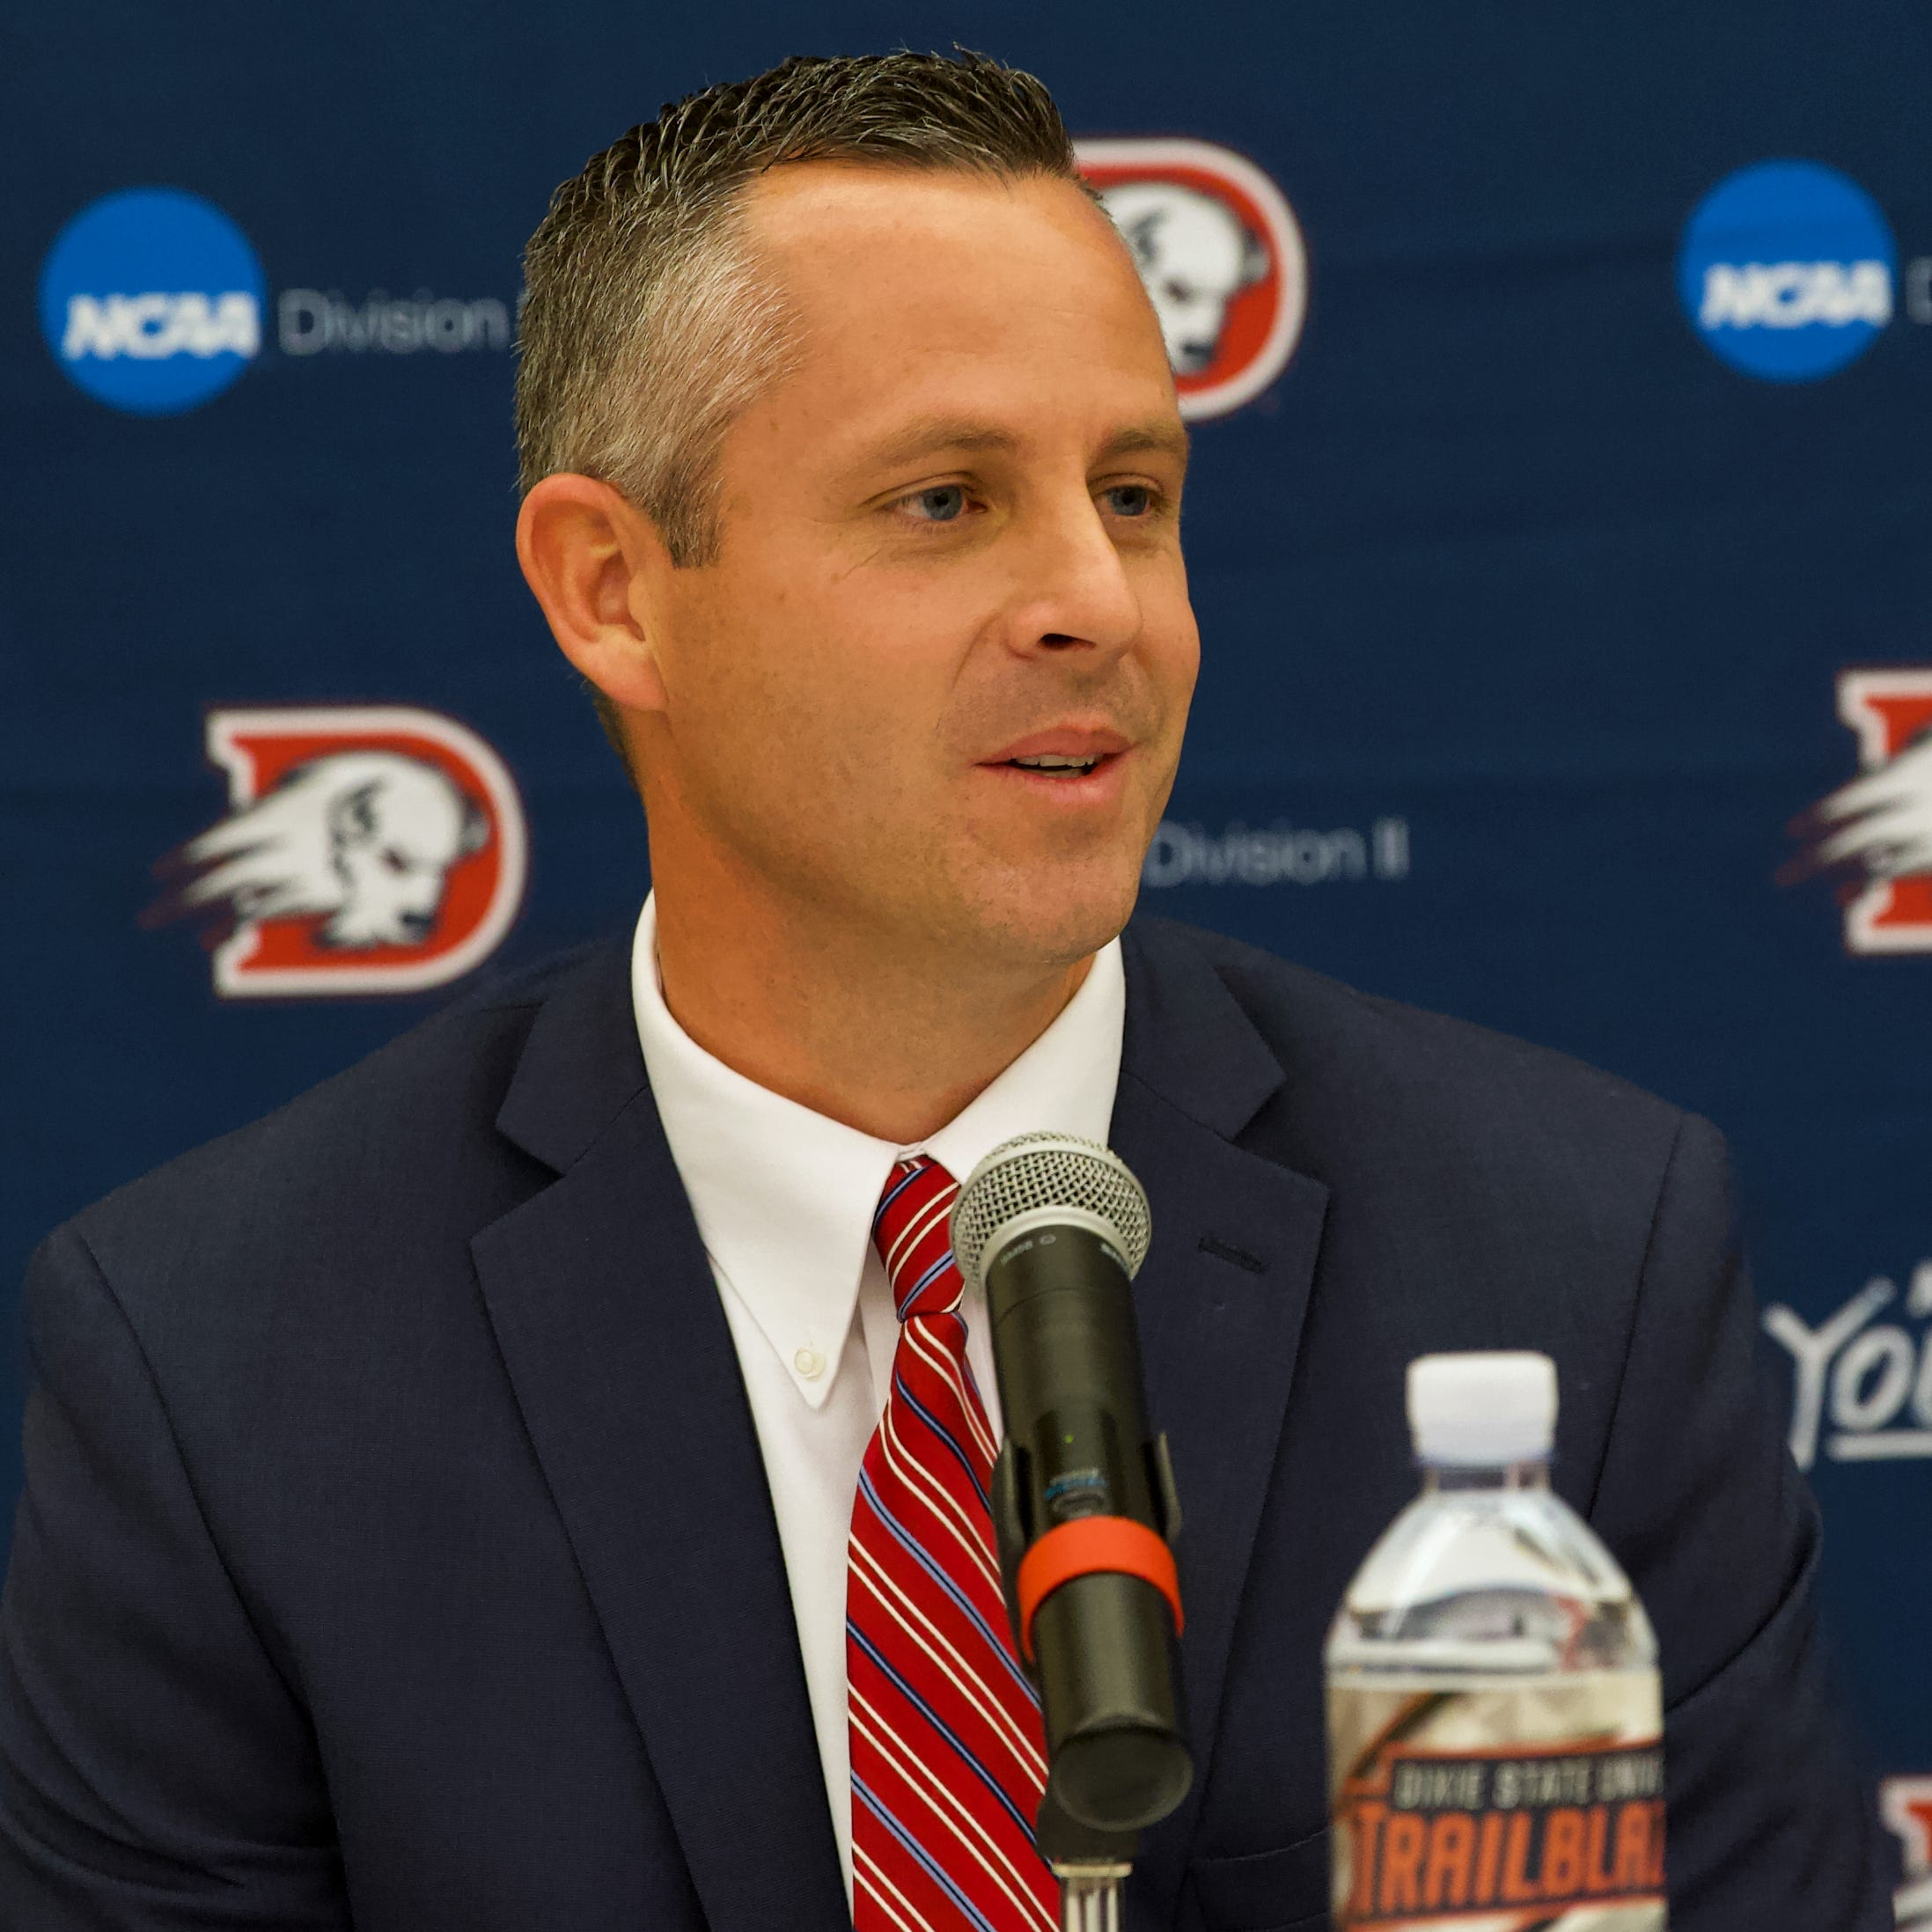 Peterson opens stint as Dixie State head football coach with introductory press conference